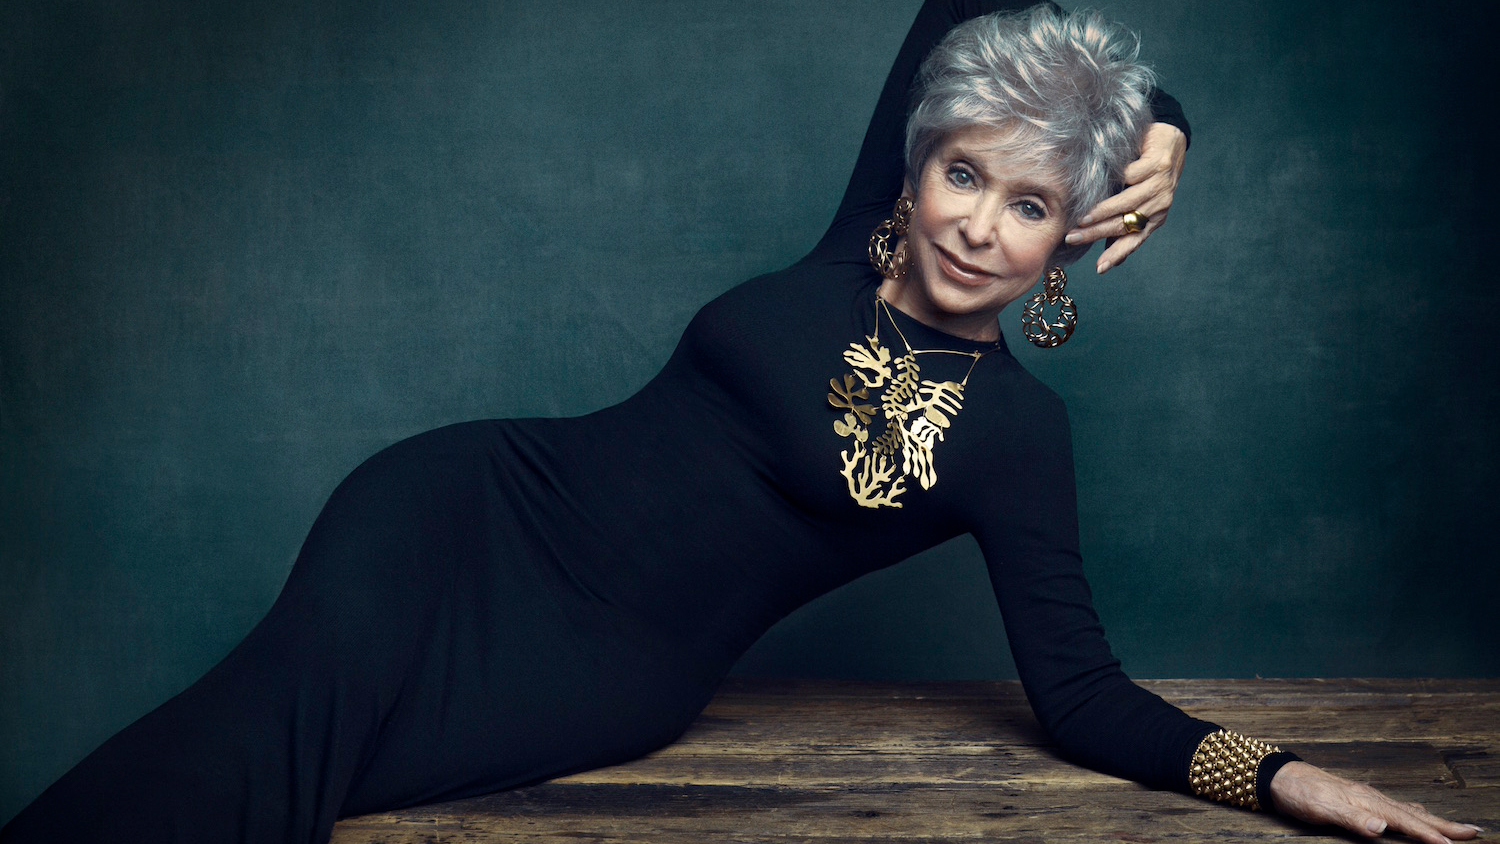 Rita Moreno: The Girl Who Decided to Go For It - About